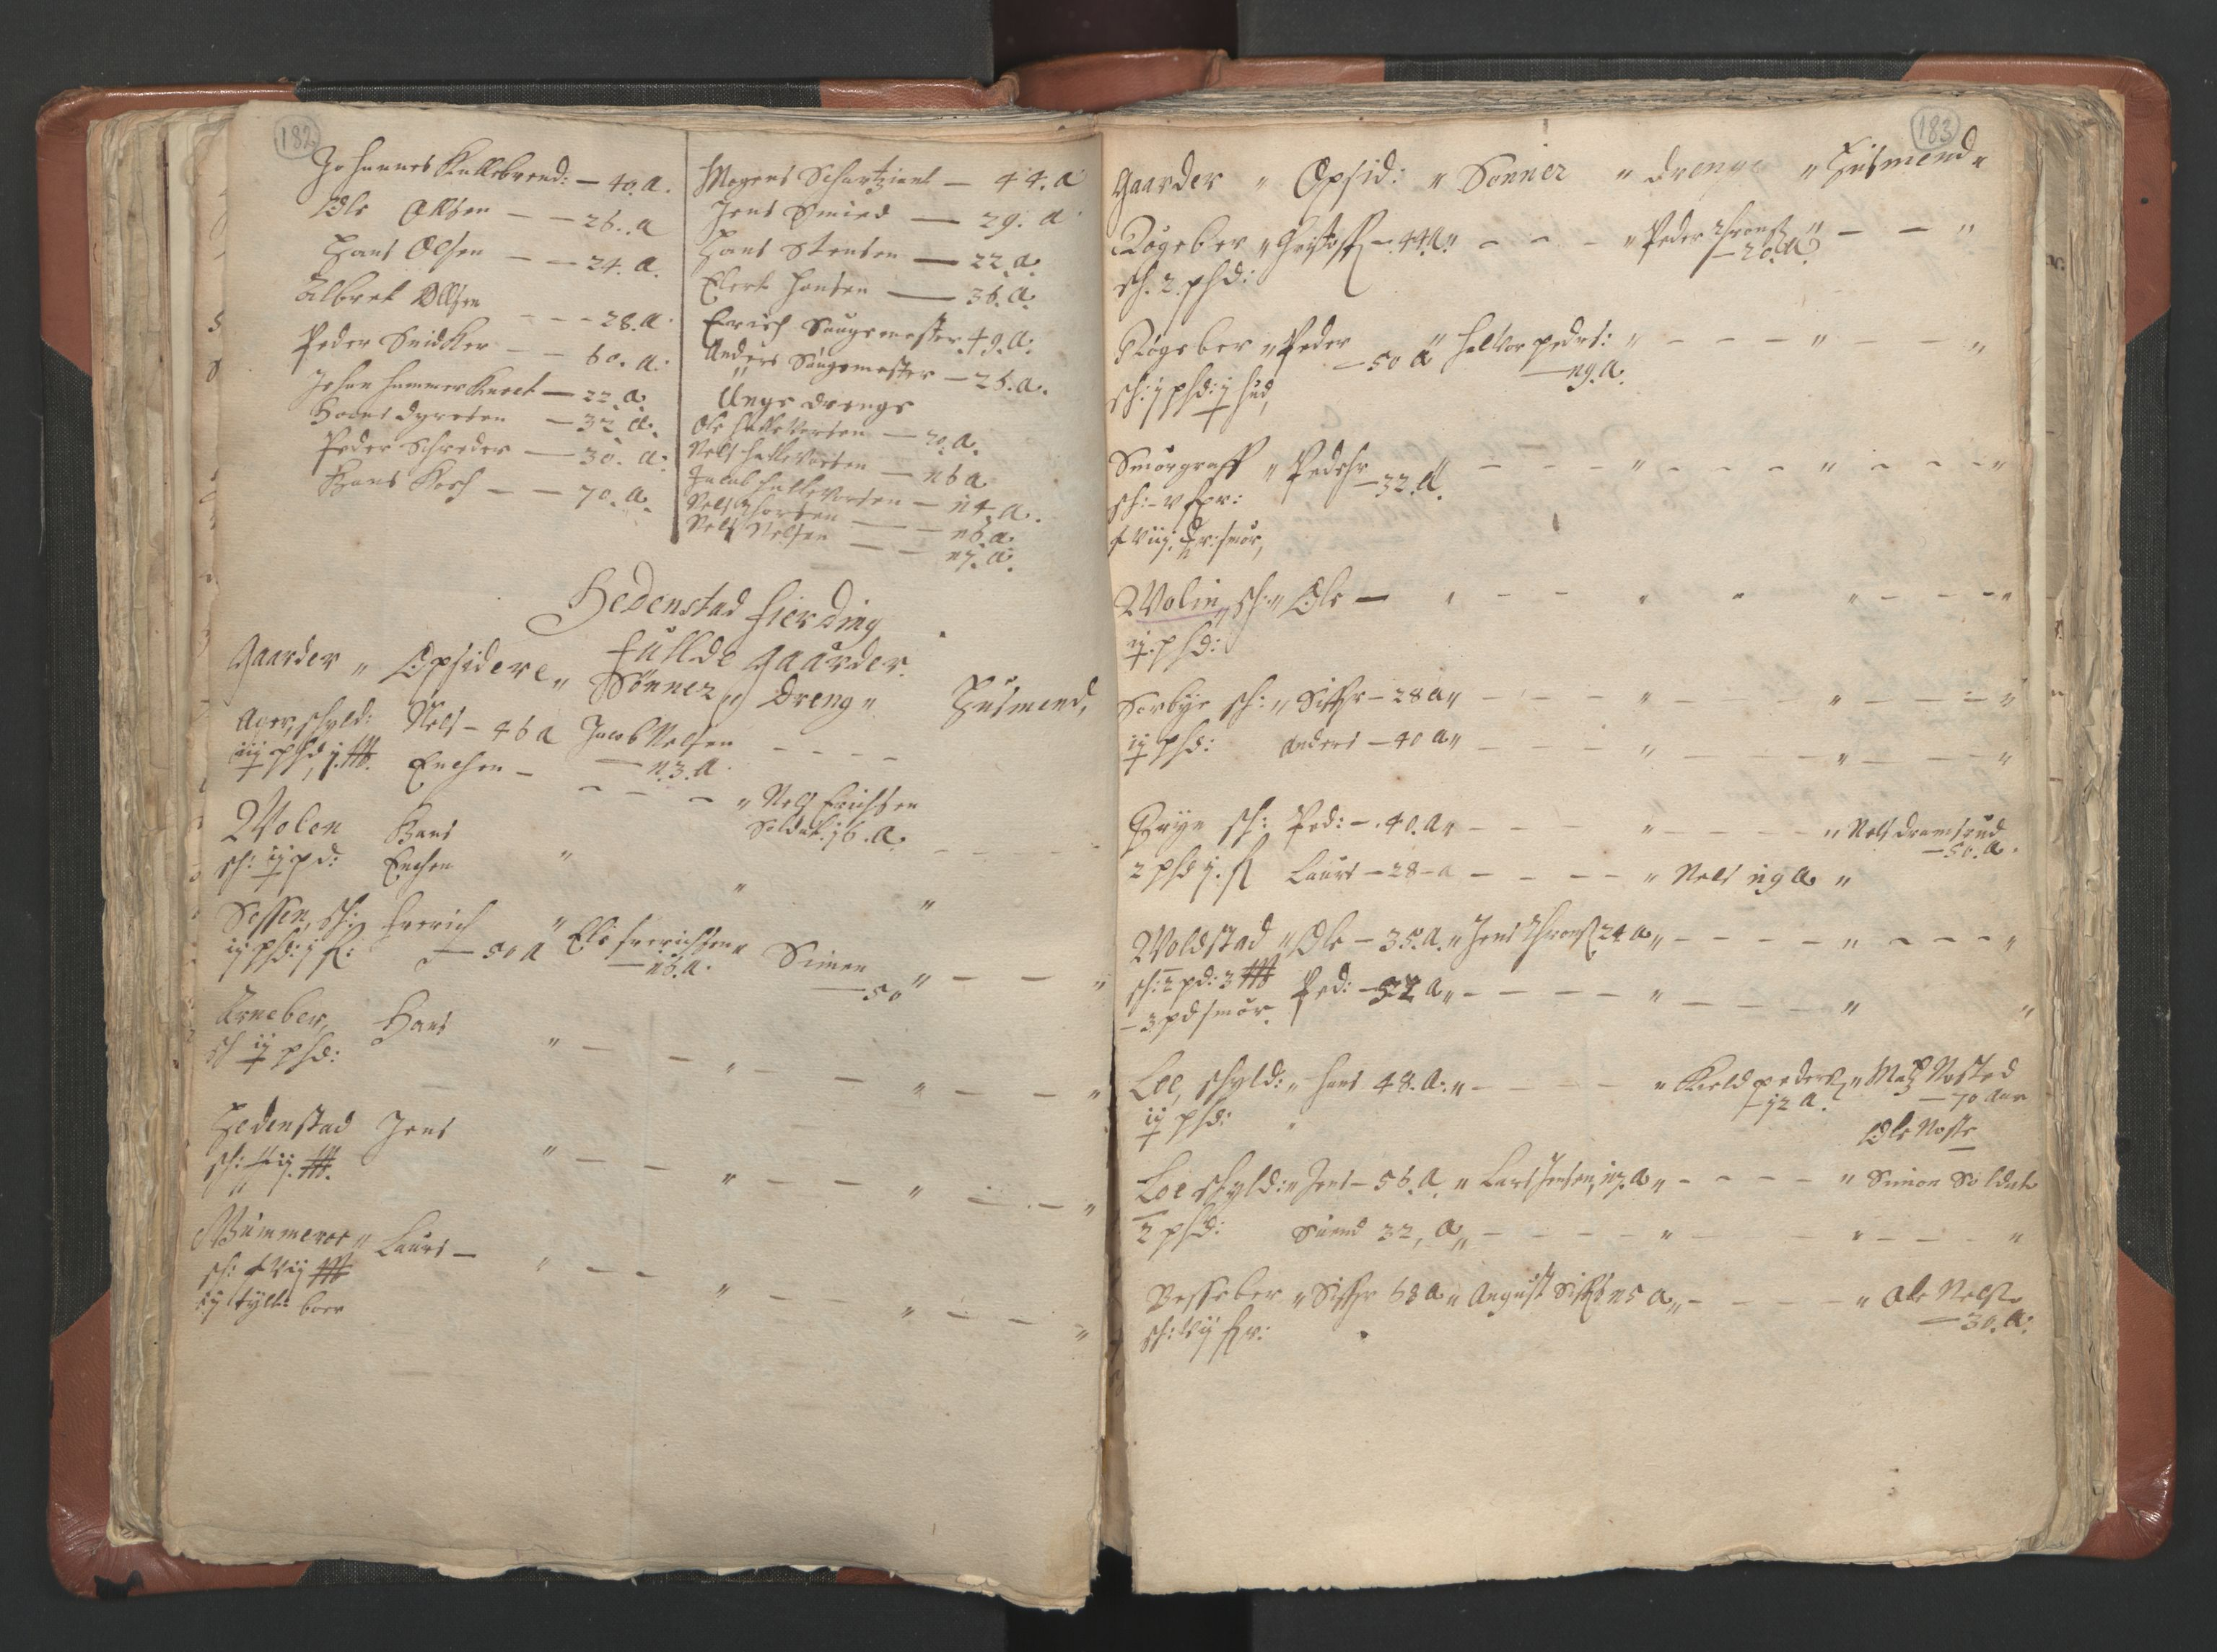 RA, Vicar's Census 1664-1666, no. 9: Bragernes deanery, 1664-1666, p. 182-183